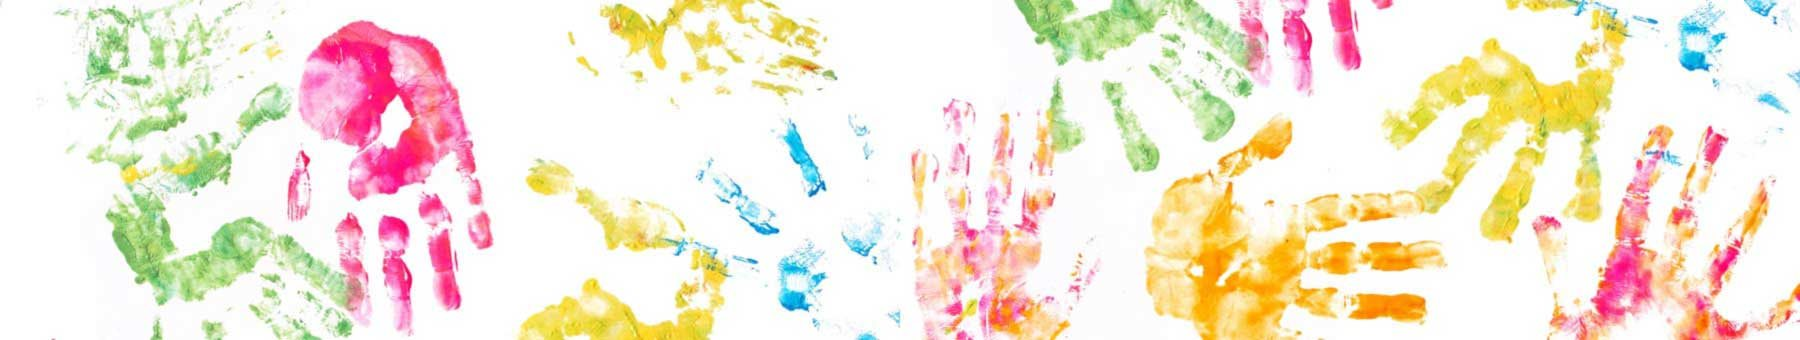 Children's hand prints in bright colors